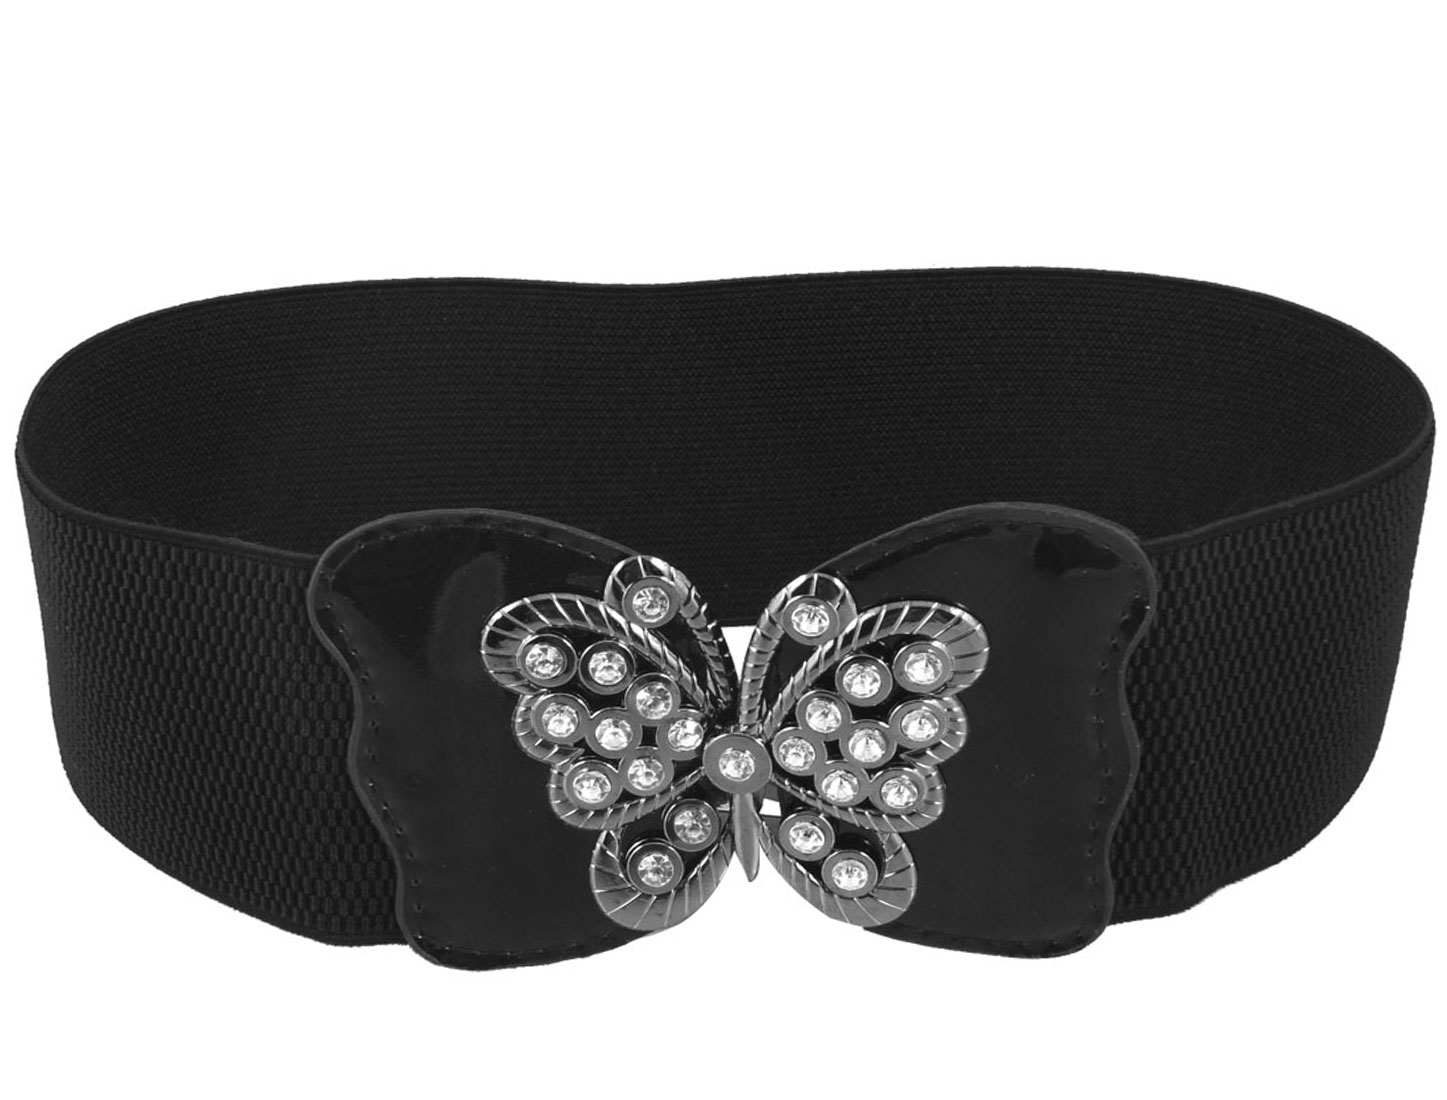 Women Rhinestone Inlaid Butterfly Shape Interlock Buckle Elastic Cinch Belt Black